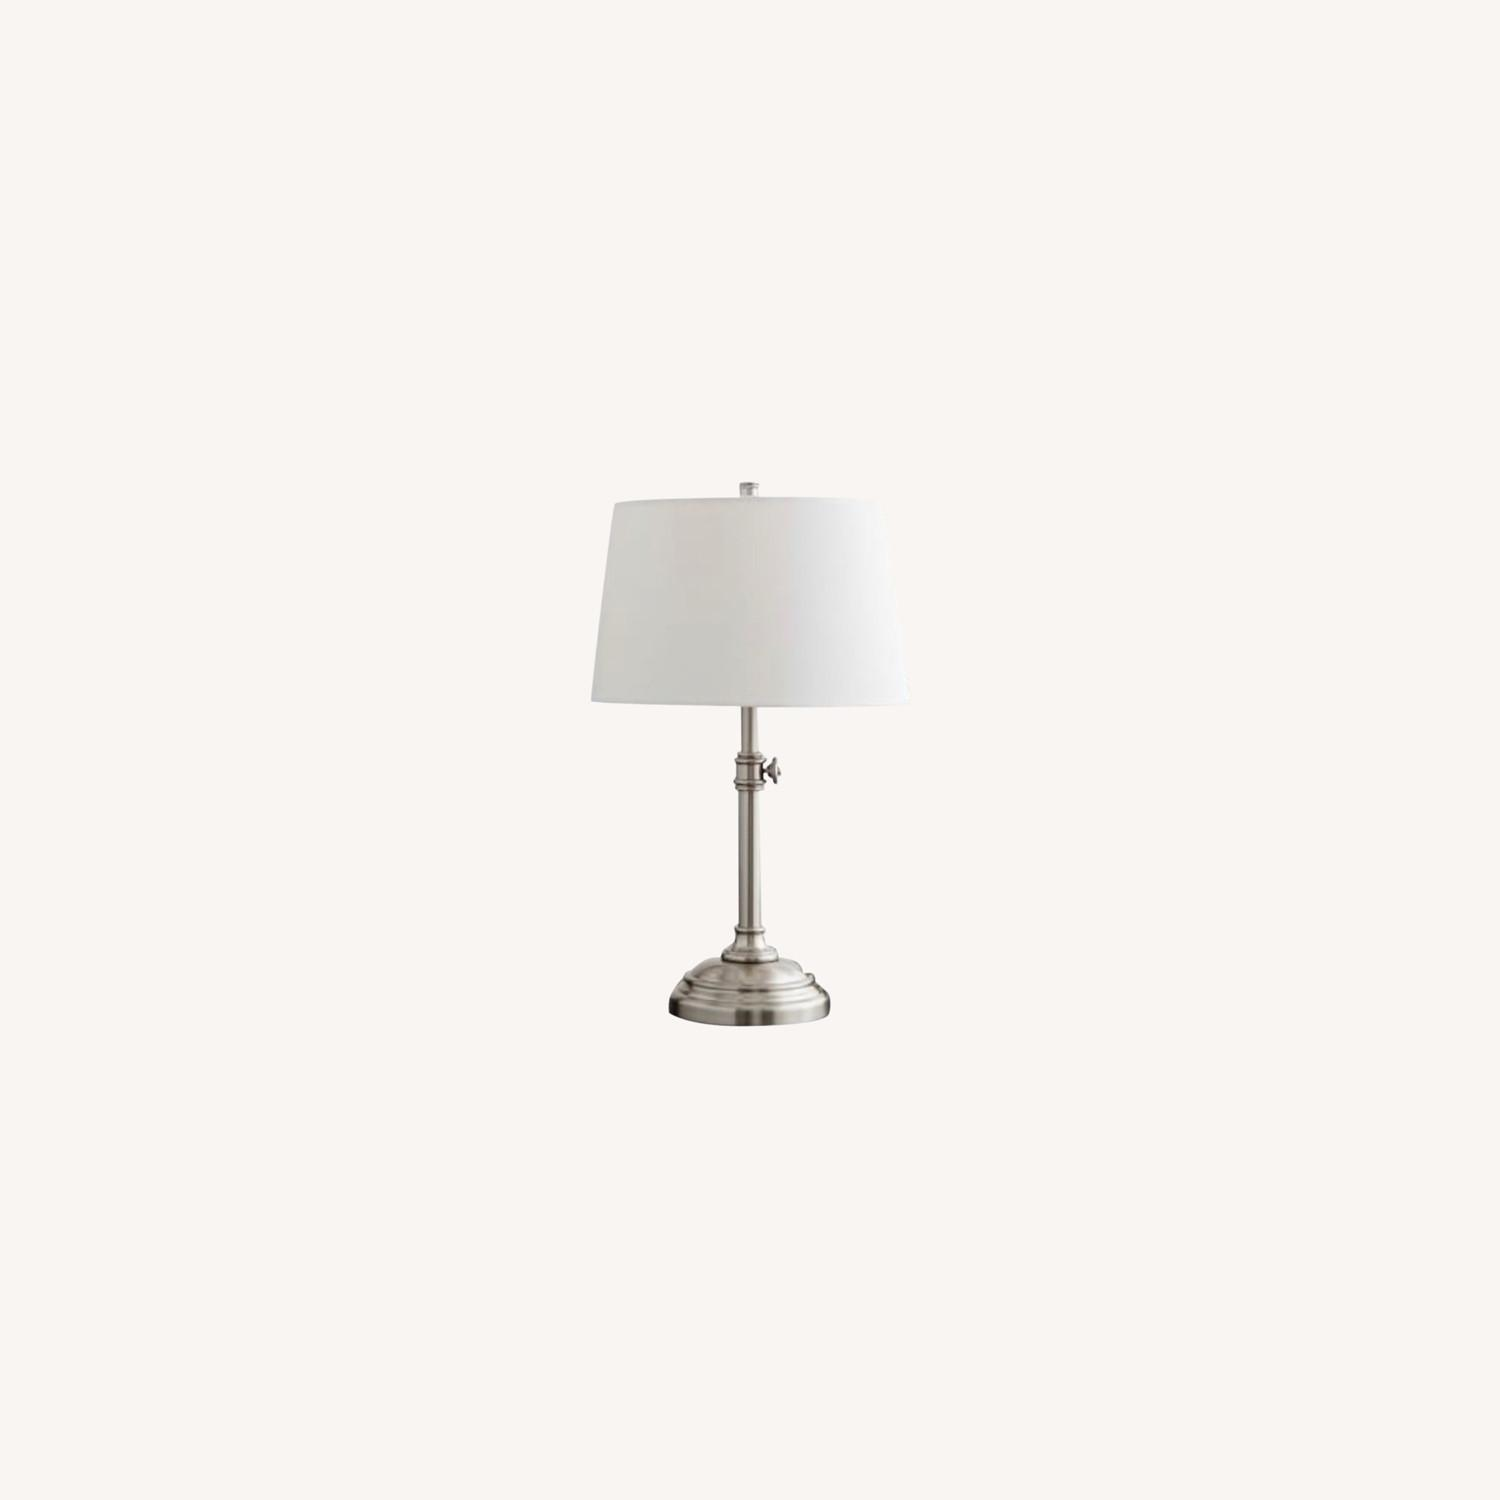 Pottery Barn Chelsea Table Lamps 25 Nickel - image-0